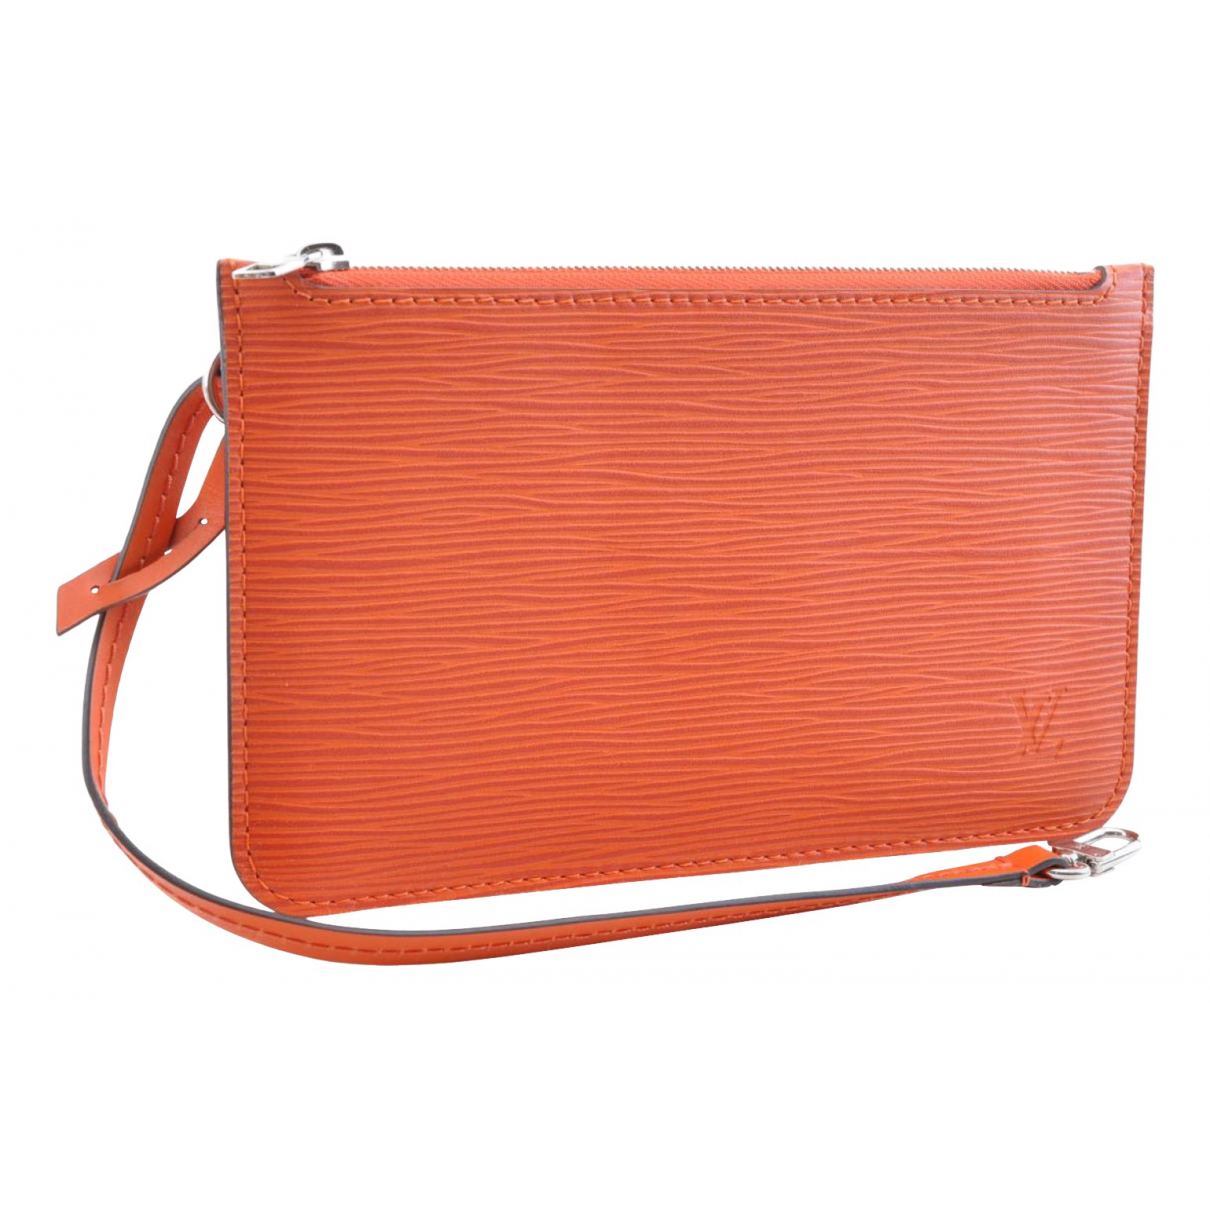 Louis Vuitton Neverfull Orange Leather Clutch bag for Women N